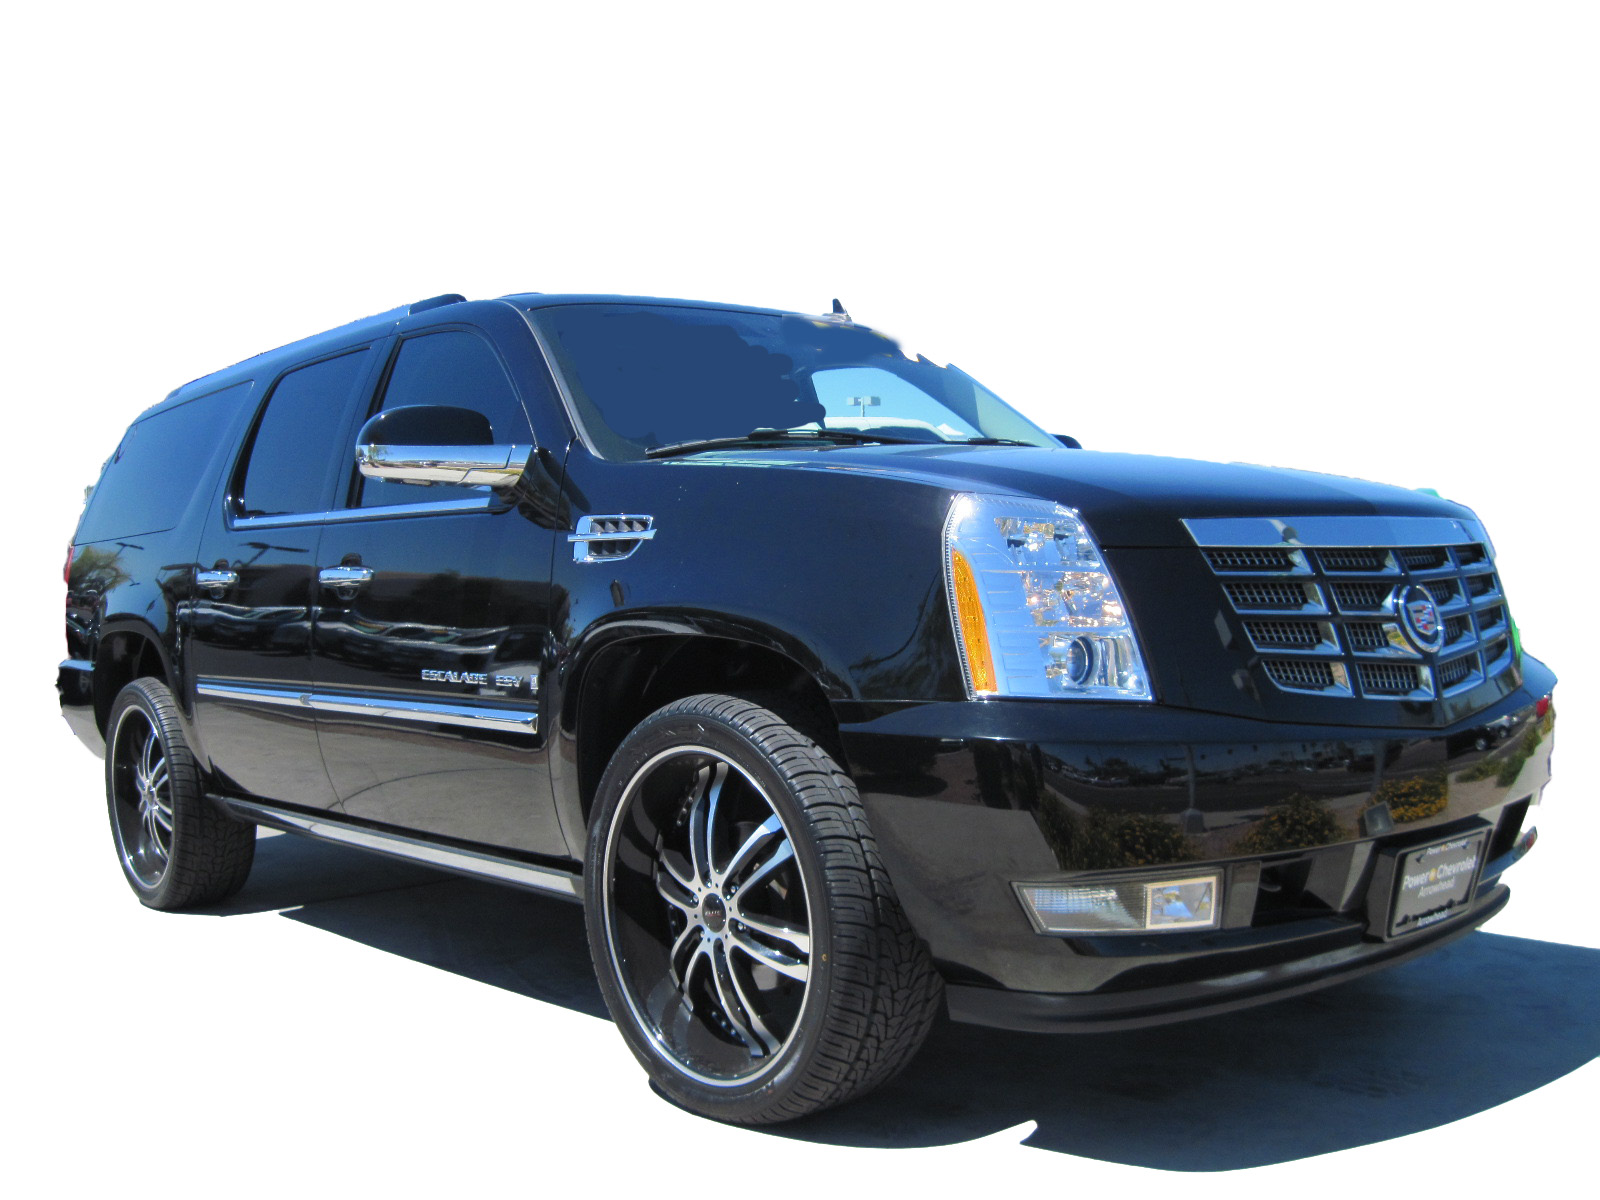 Some great benefits of Looking at 2007 Cadillac Escalade Owners Manual Pdf